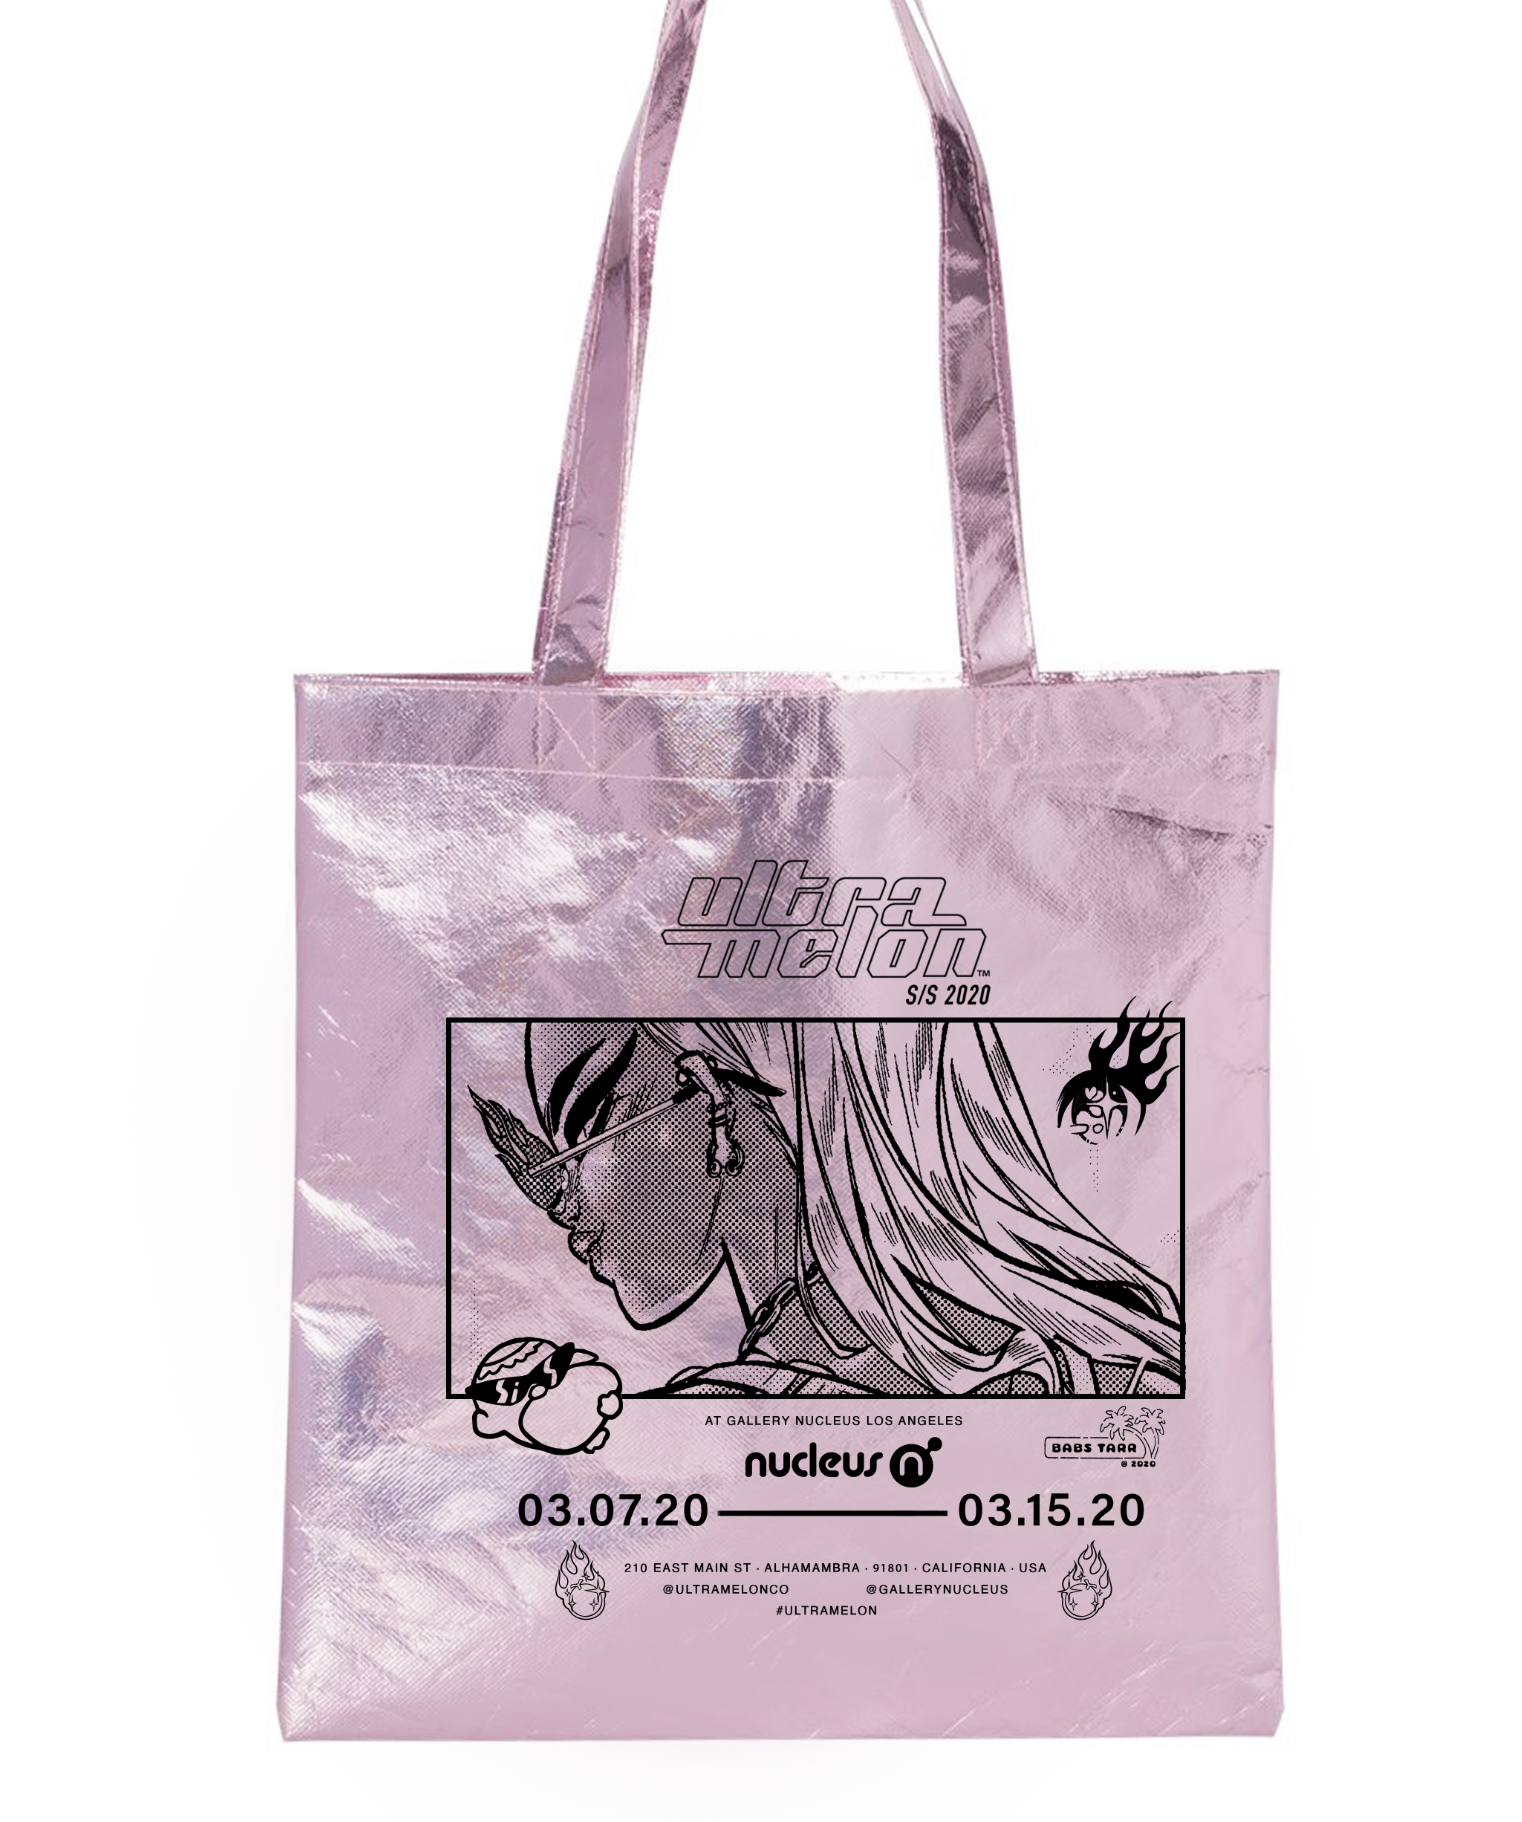 Tote Bags (Pink), Babs Tarr